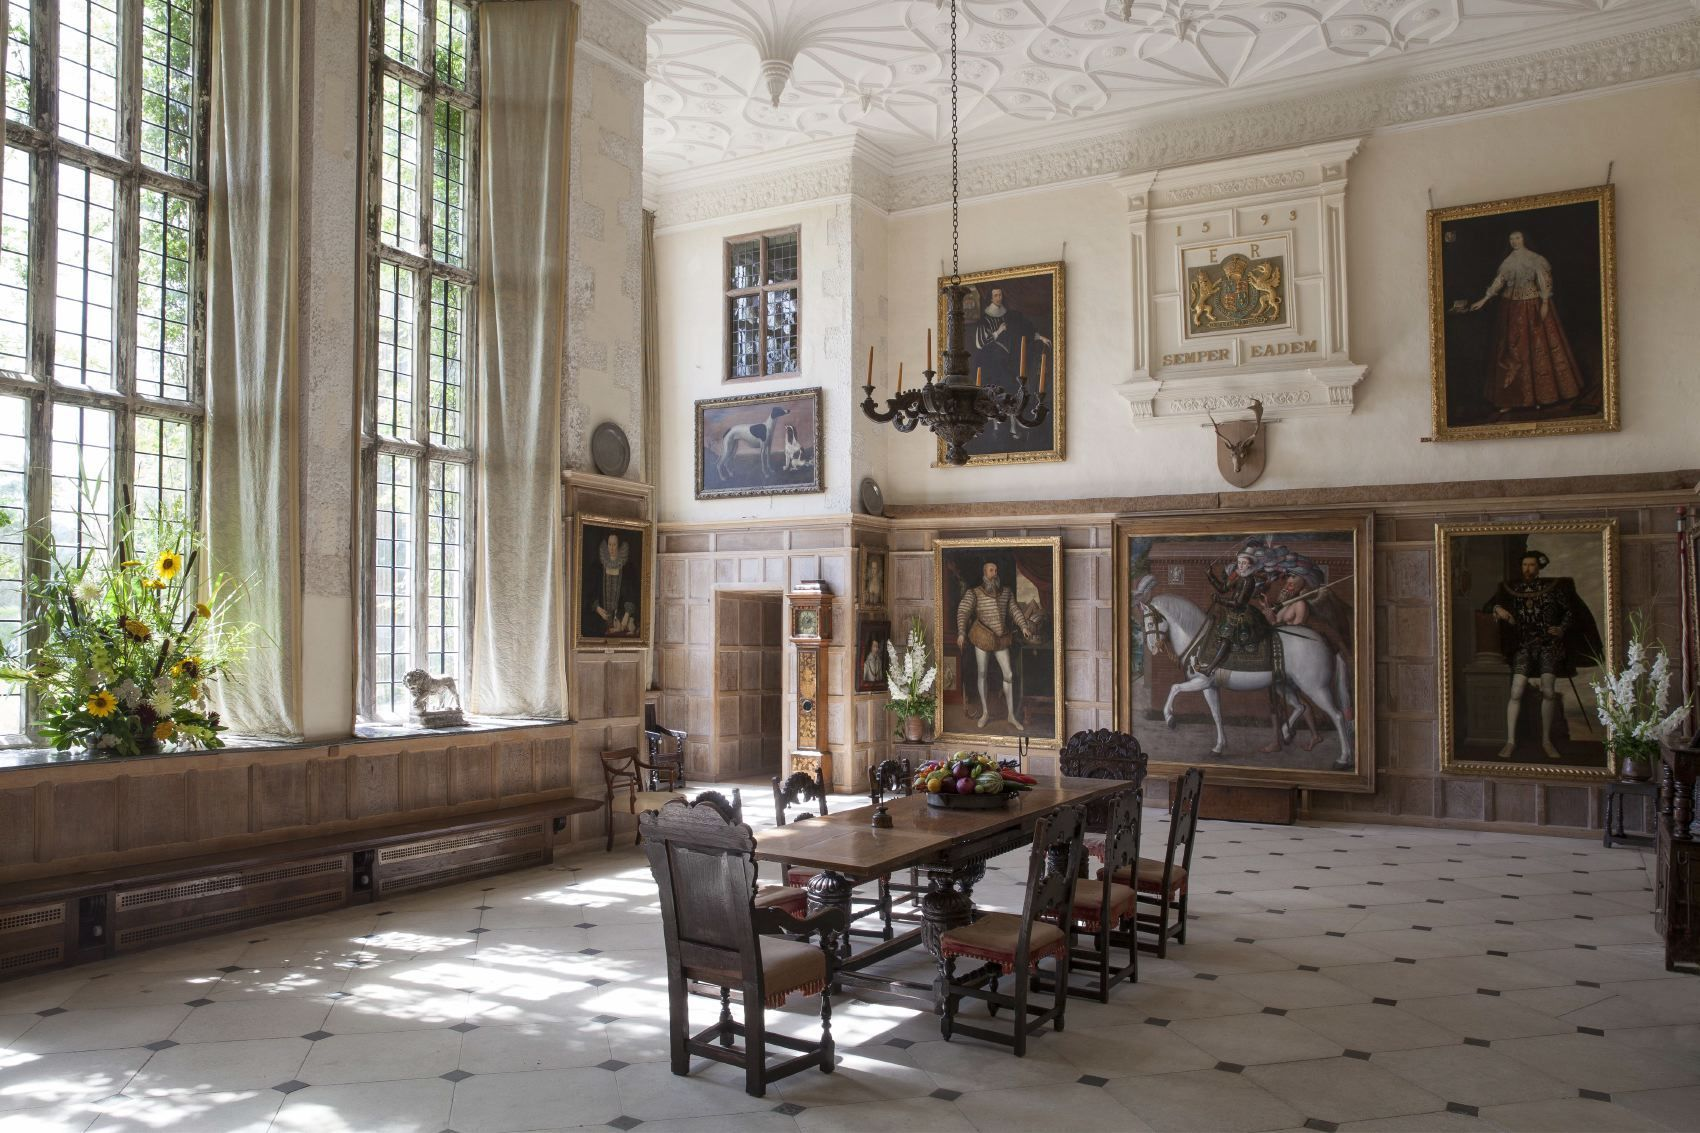 English country home interiors  Pin by Patrick Carnighan on English Interiors  Pinterest  Country